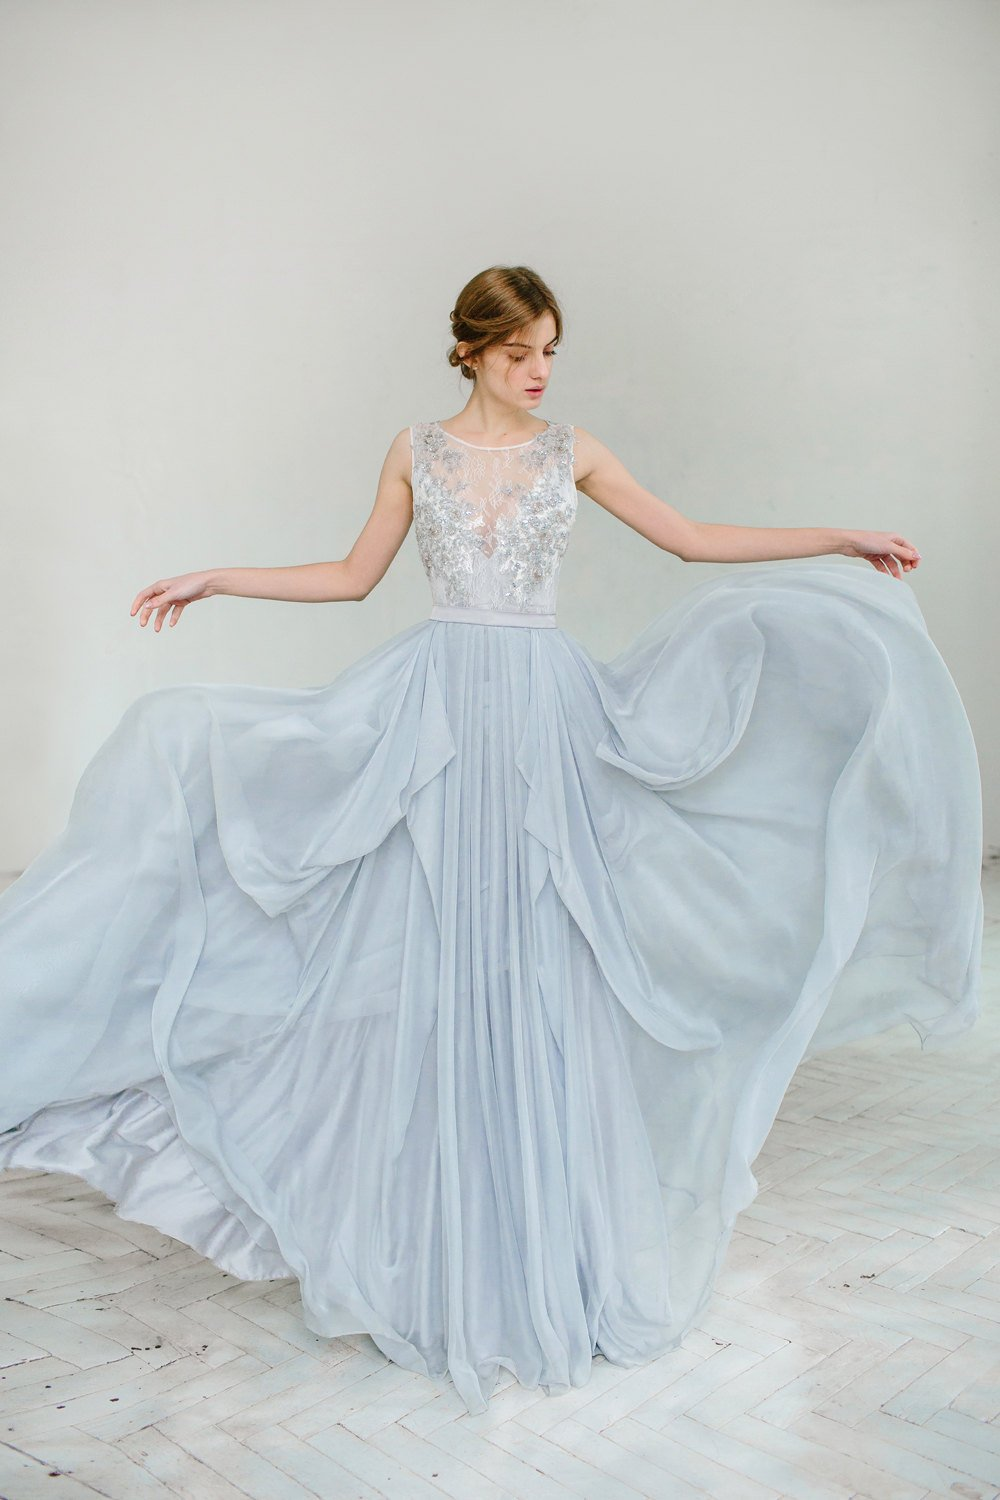 Silver grey wedding dress.jpg